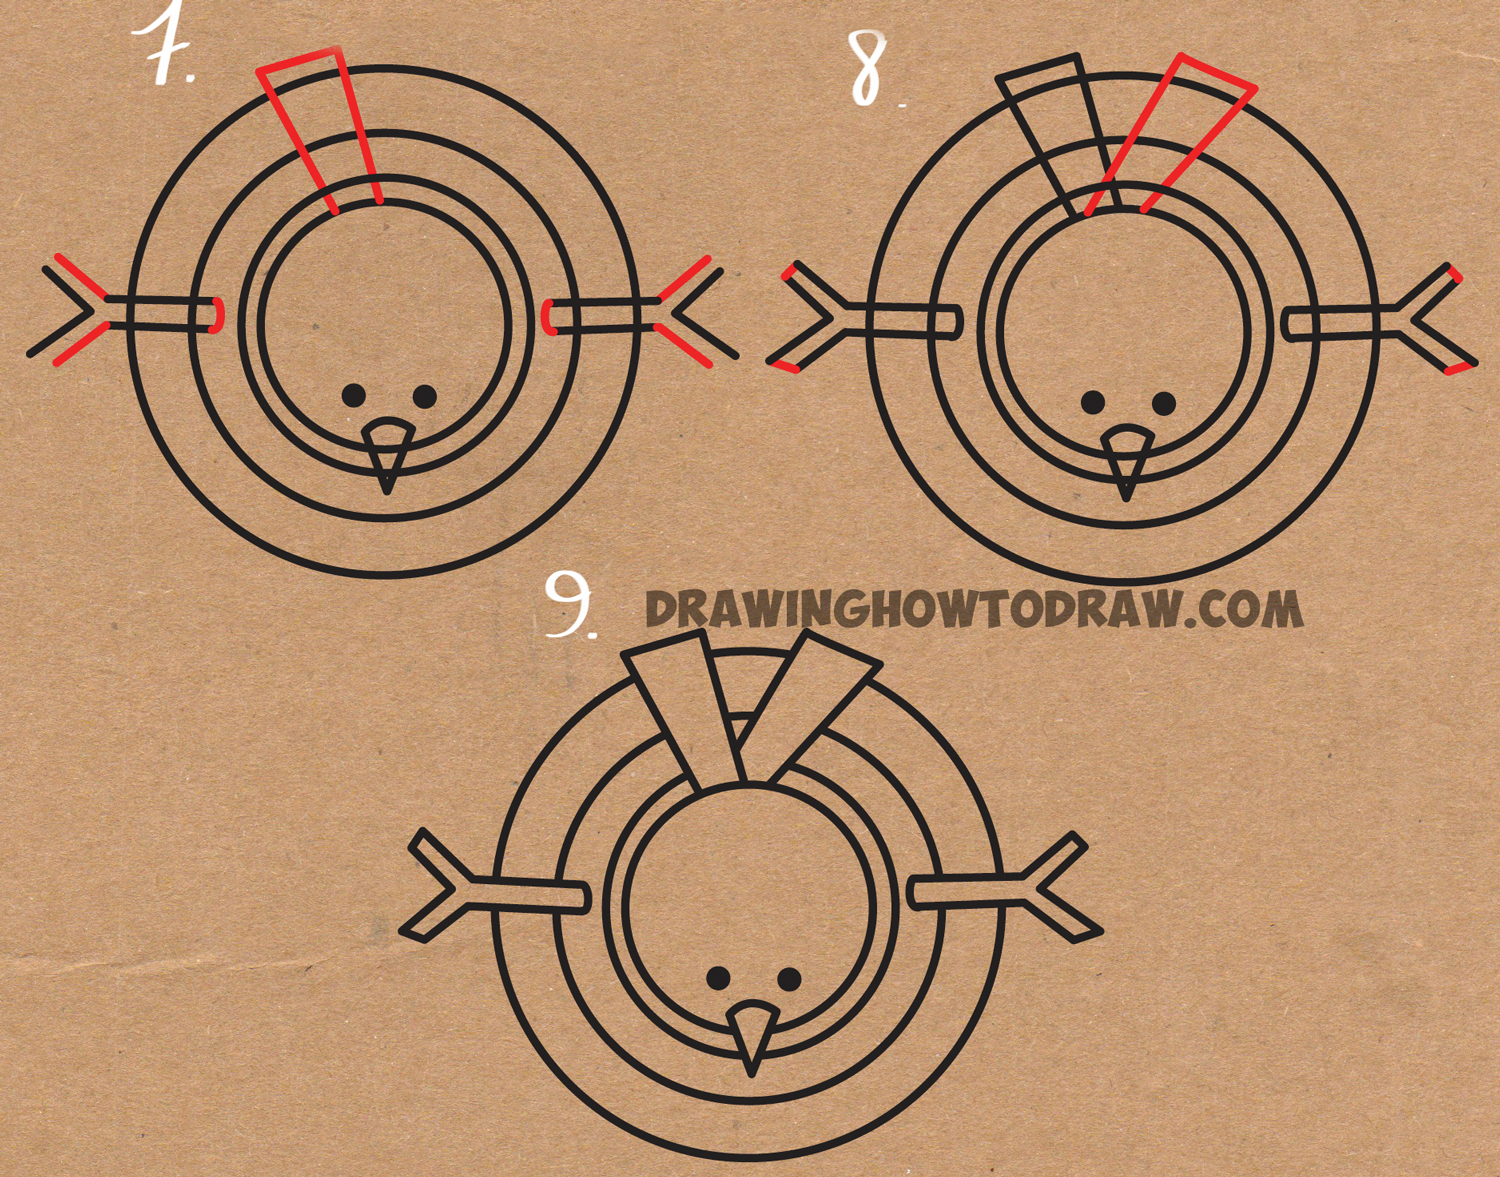 learn how to draw cartoon snowman from above